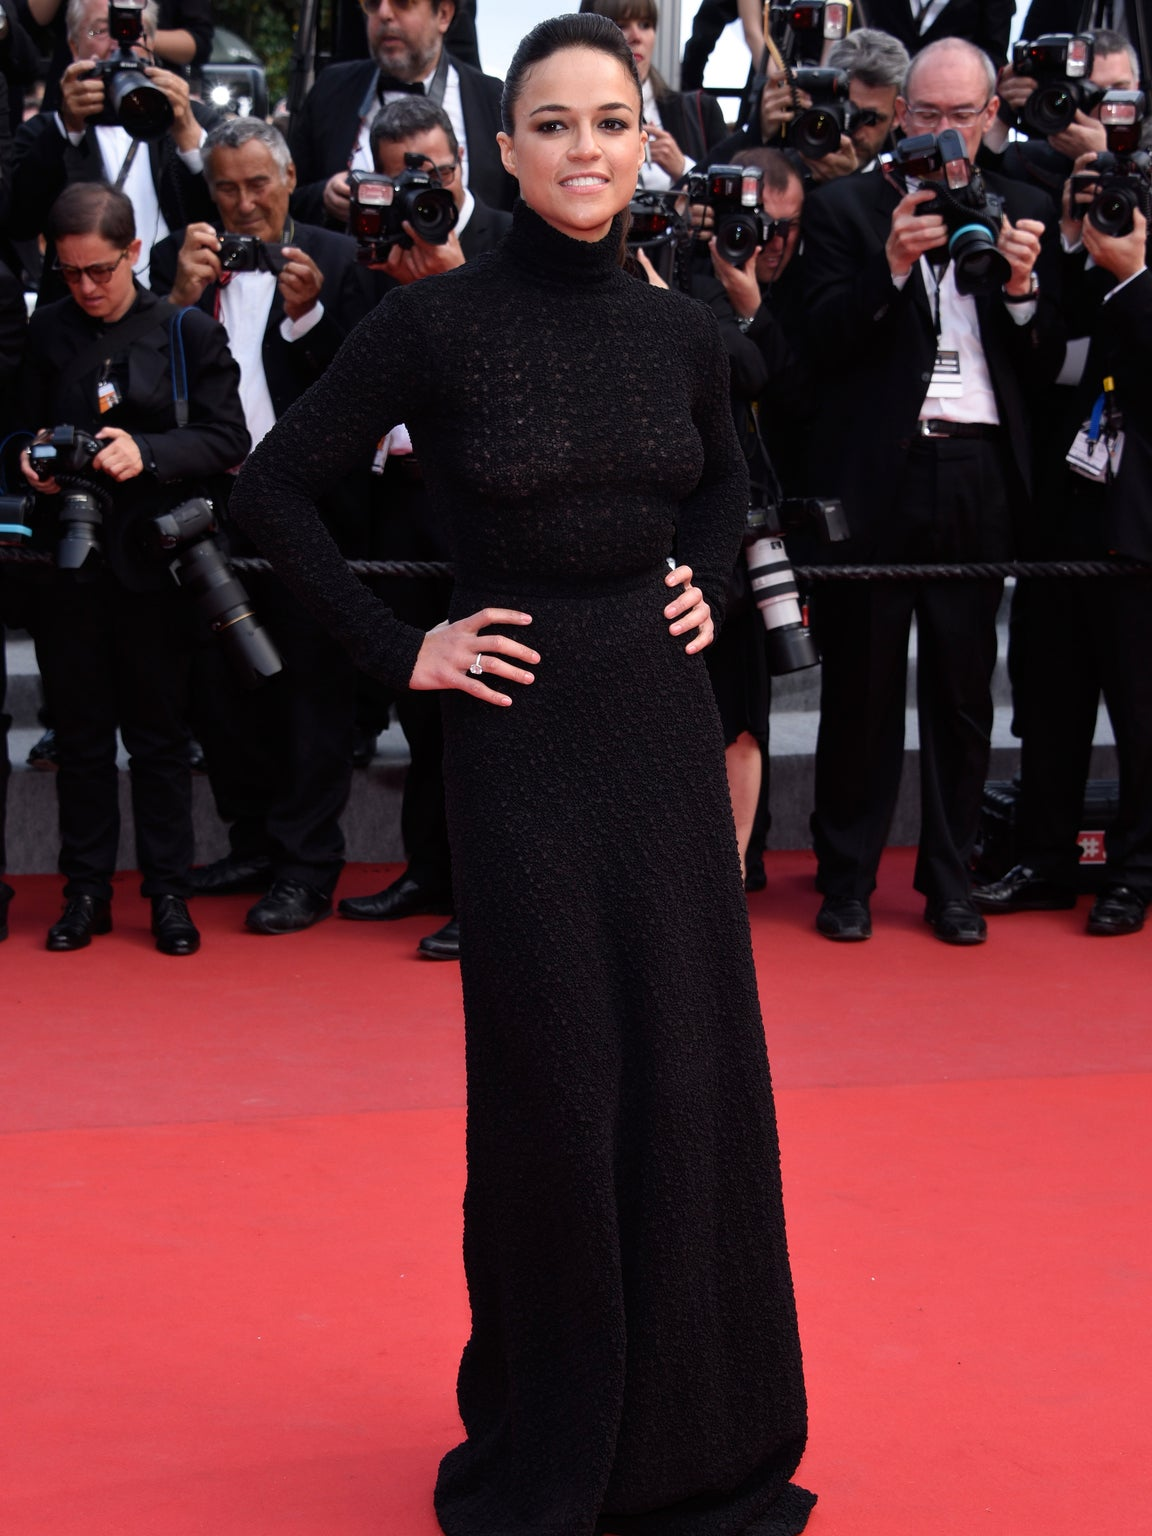 Discussion on this topic: Sun, sex' and Prada at the Cannes , sun-sex-and-prada-at-the-cannes/